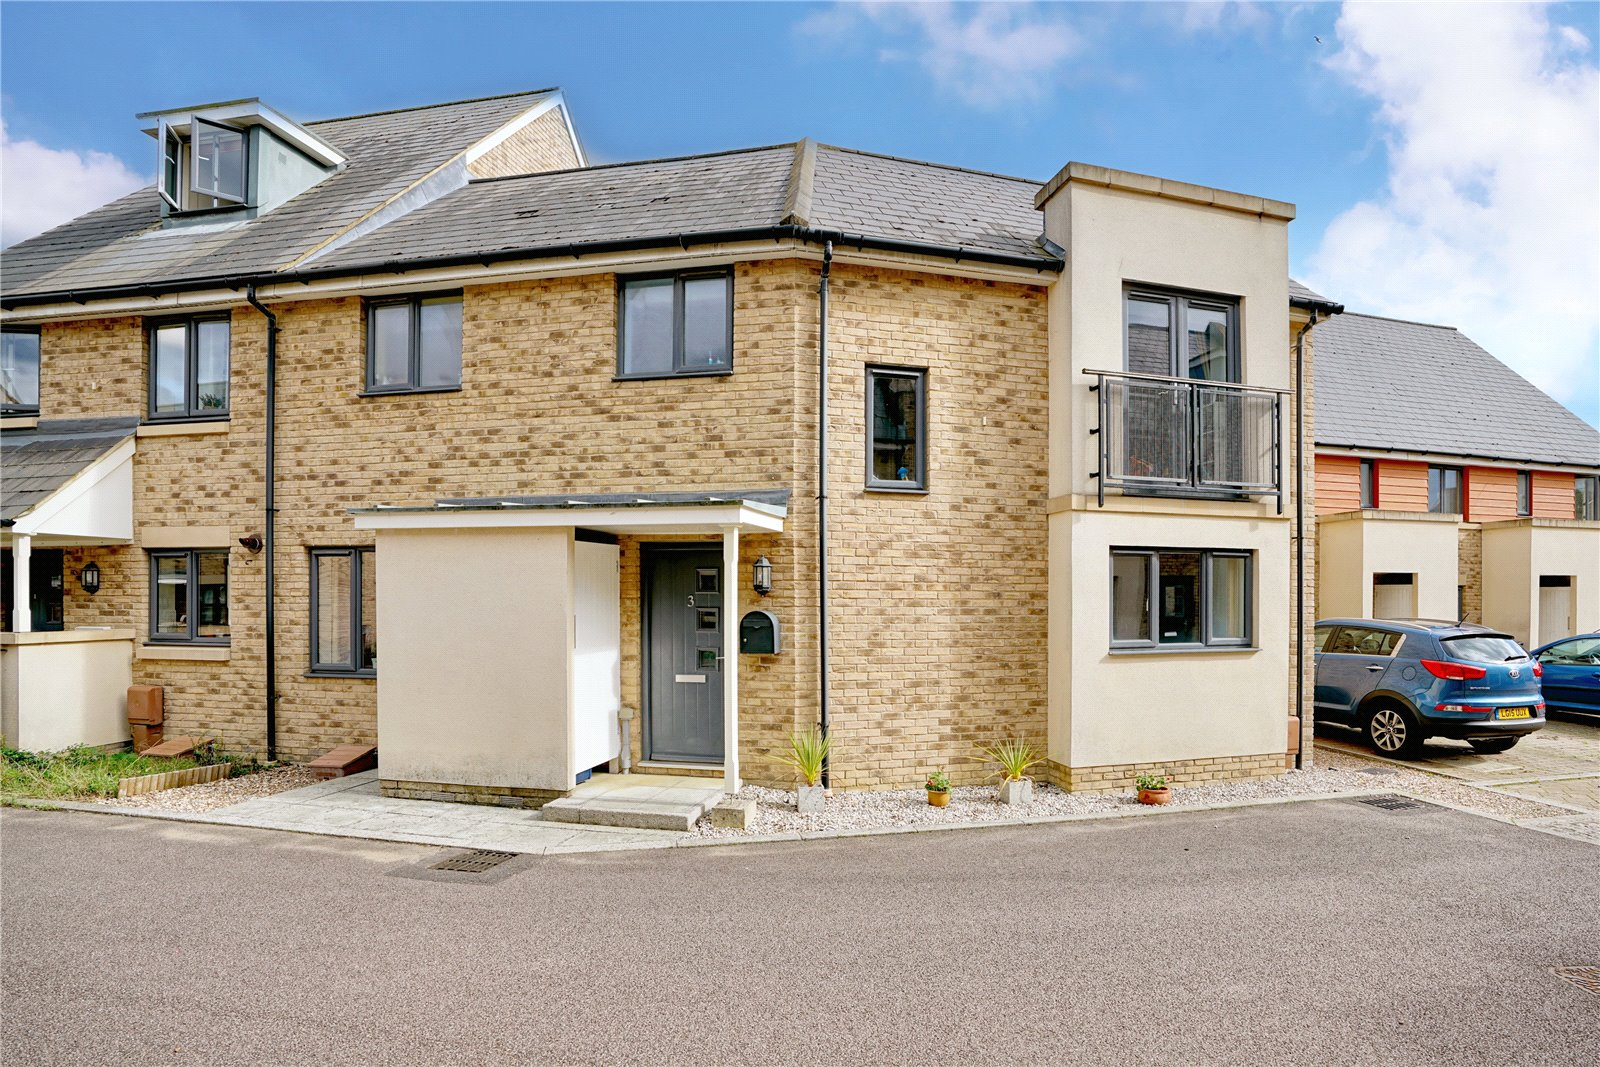 3 bed house for sale in St. Neots, Leveret Way, PE19 6AT, PE19